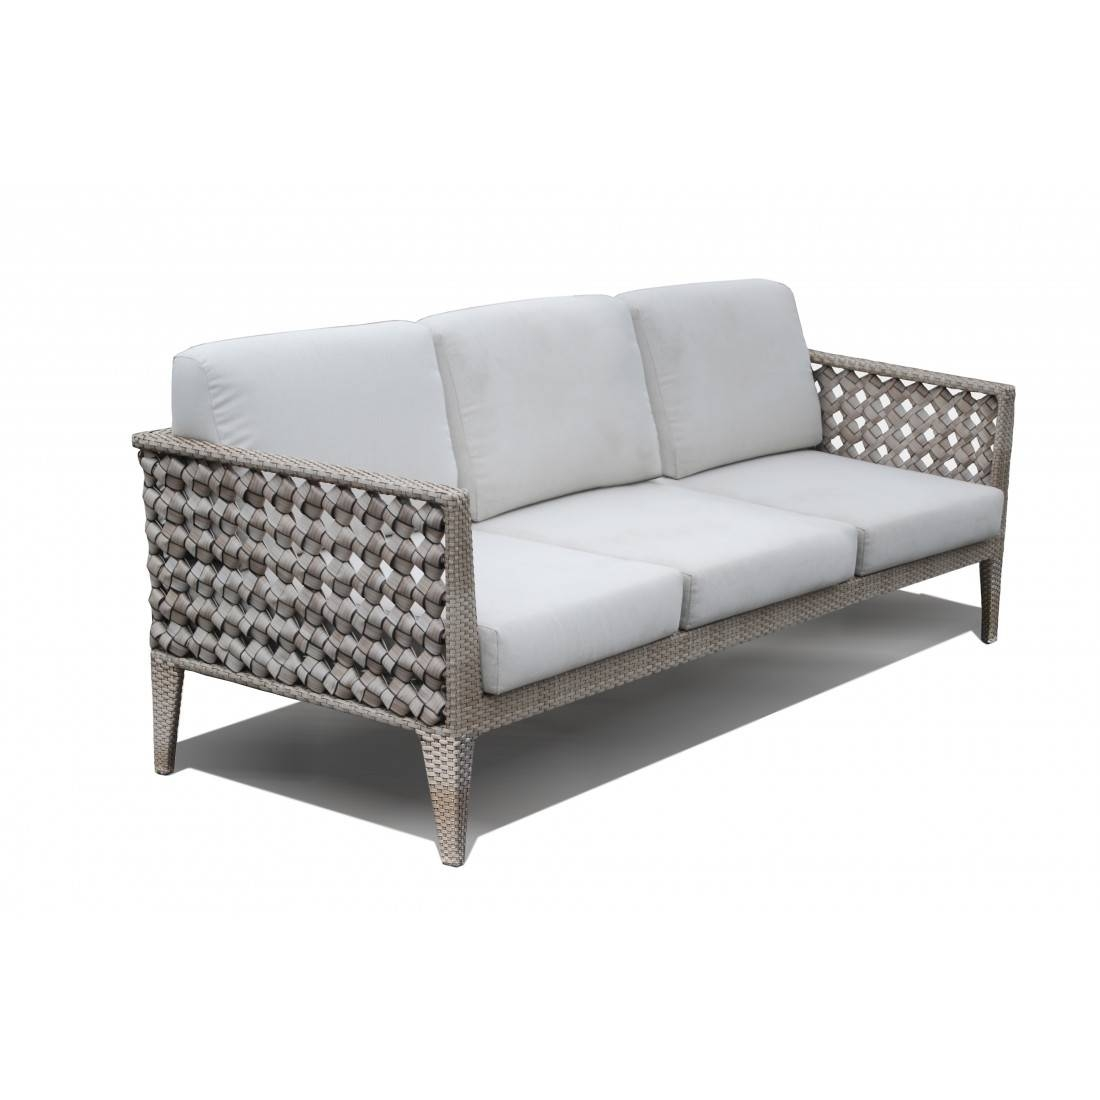 Outdoor Sofas – Heart Sofaskyline Design With Regard To Skyline Sofas (View 5 of 15)